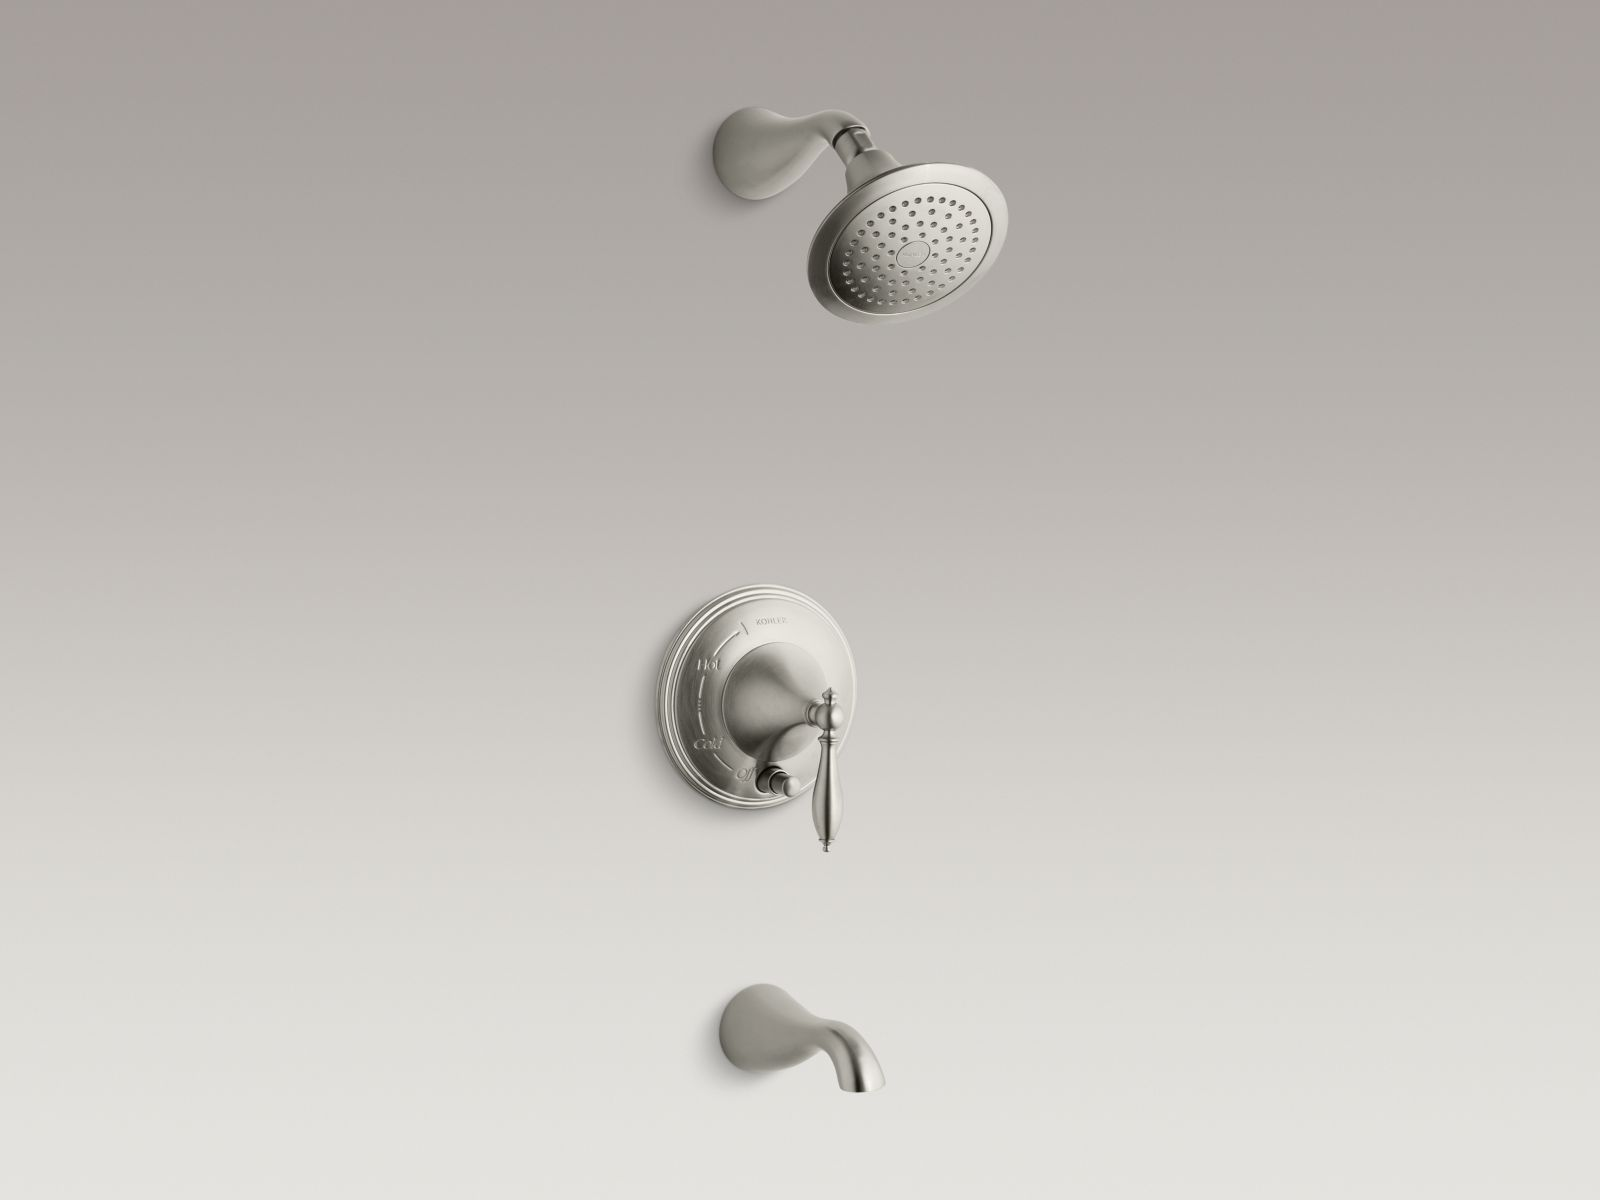 Kohler Finial® K-T312-4M-BN Rite-Temp® pressure-balancing bath and shower faucet trim with push-button diverter and lever handle, valve not included Vibrant Brushed Nickel